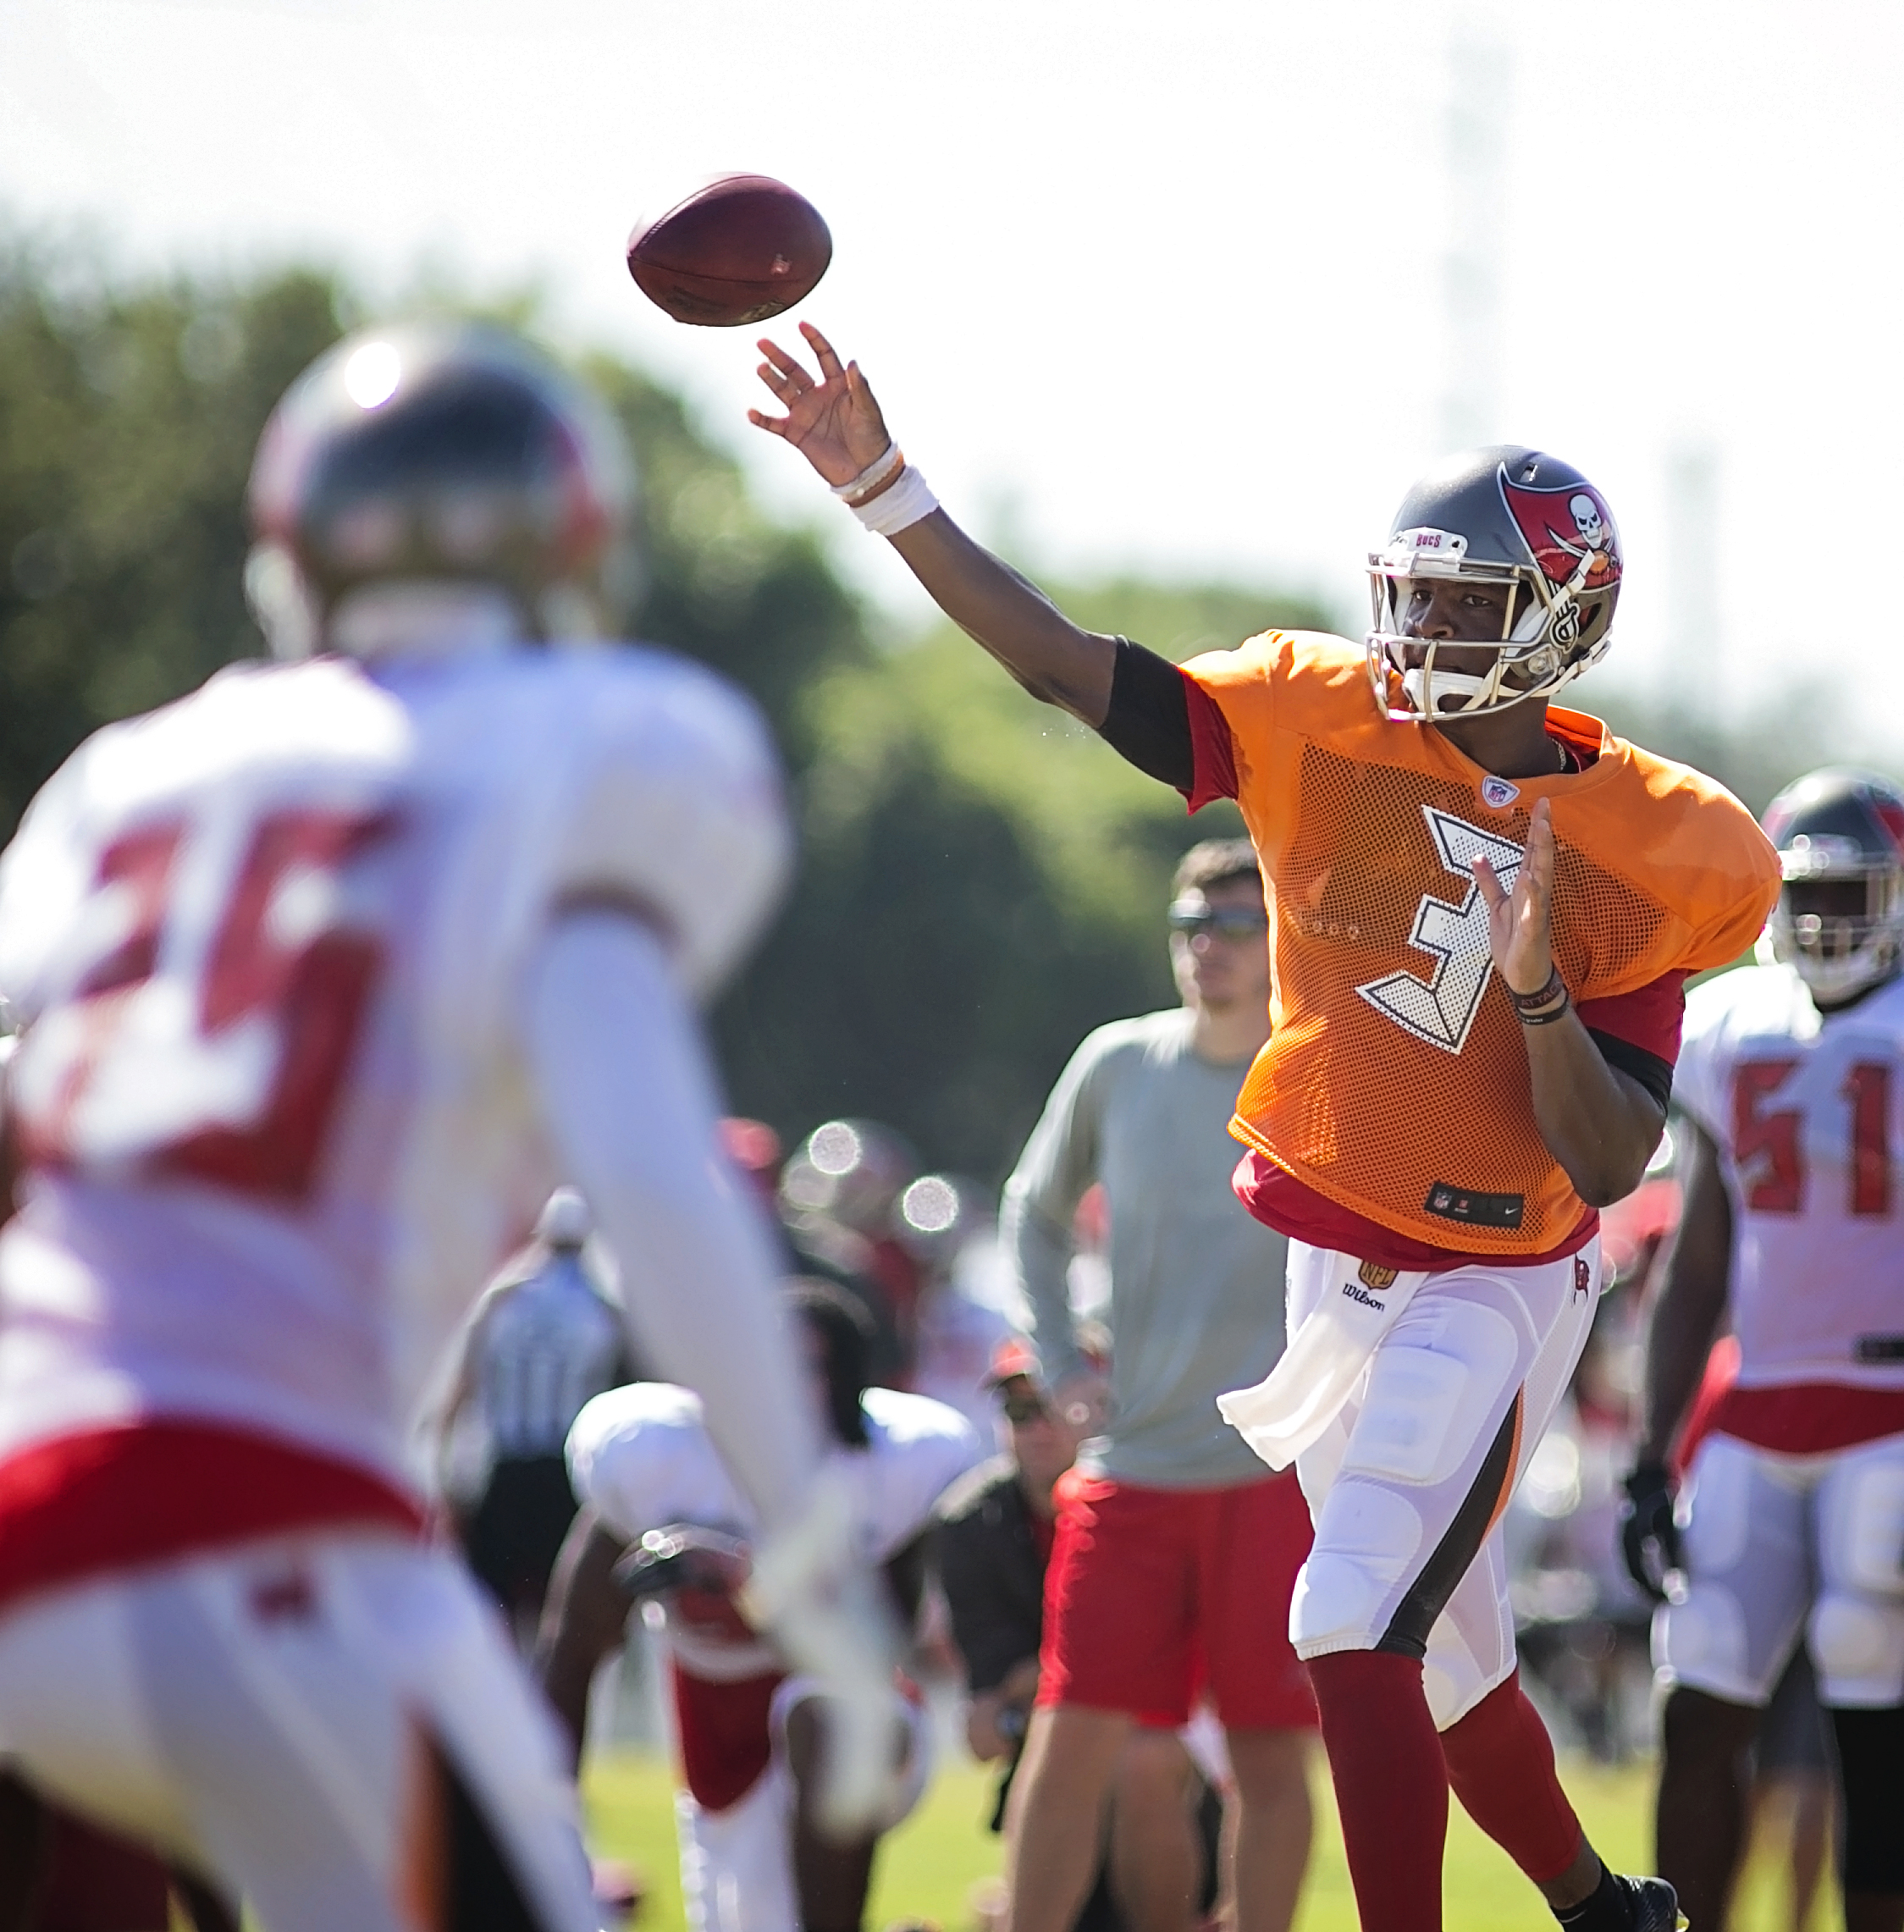 Winston is off to a good start in camp./CARMEN MANDATO